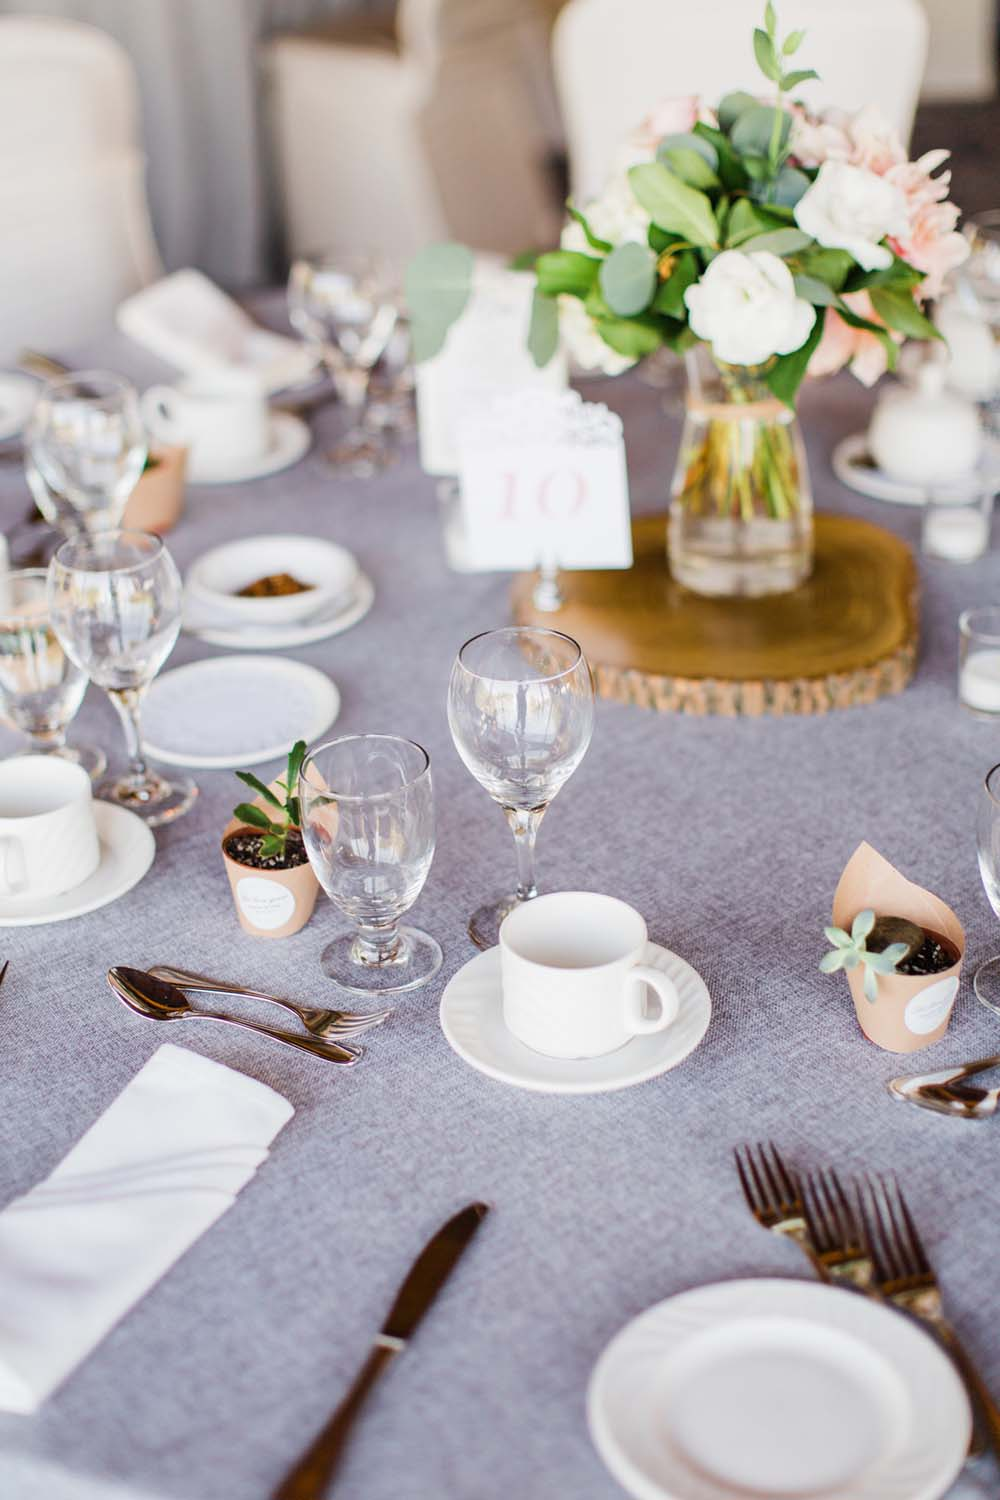 A Rustic, Whimsical Wedding in Tottenham - Table details